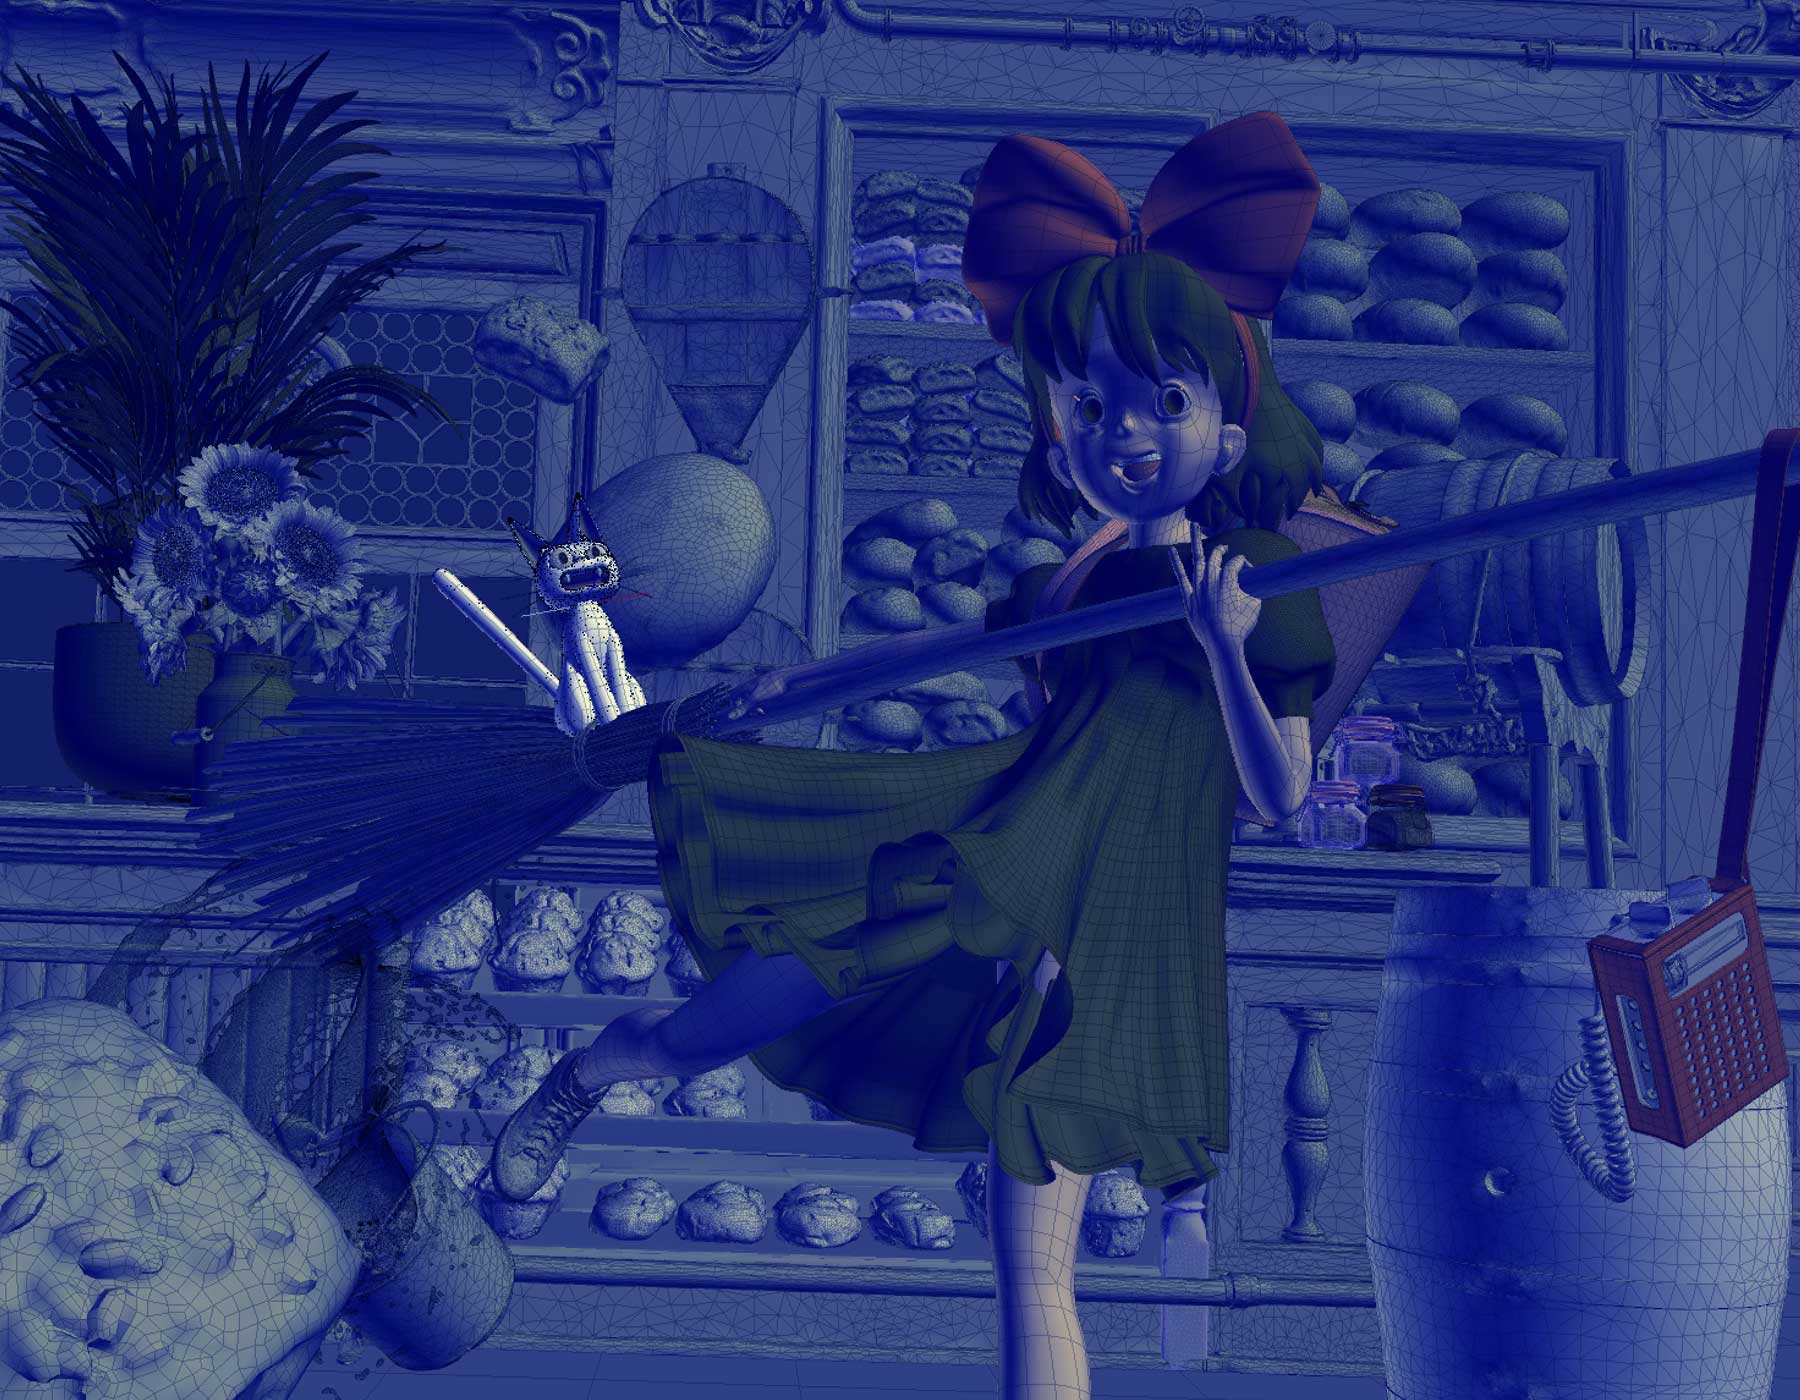 studio ghibli, kikis delivery service, Johnnie Walker, Ngon, Manchester Agency, 3d artist